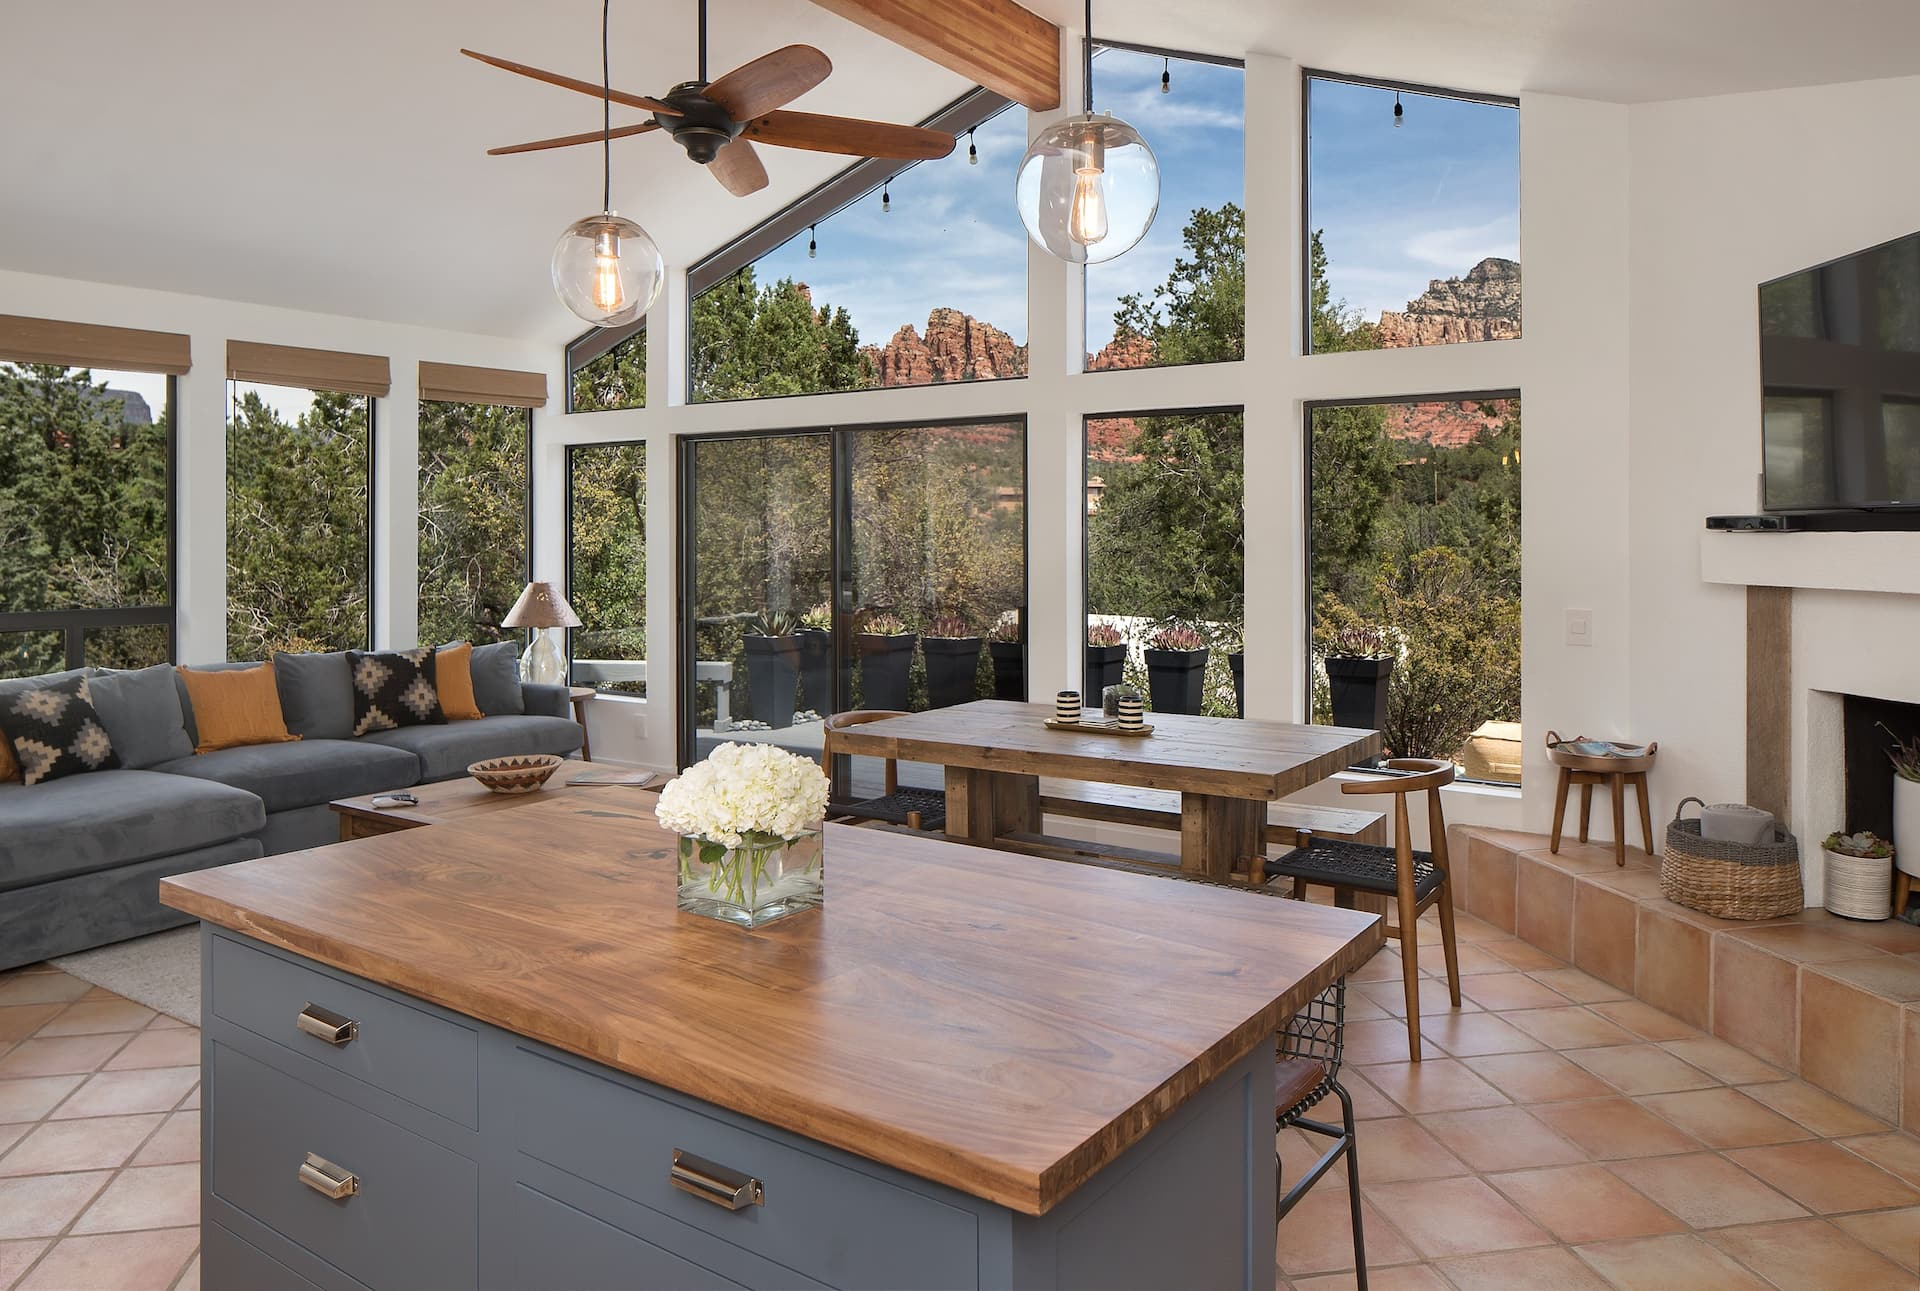 Brand New Remodeled Home Airbnb in Sedona